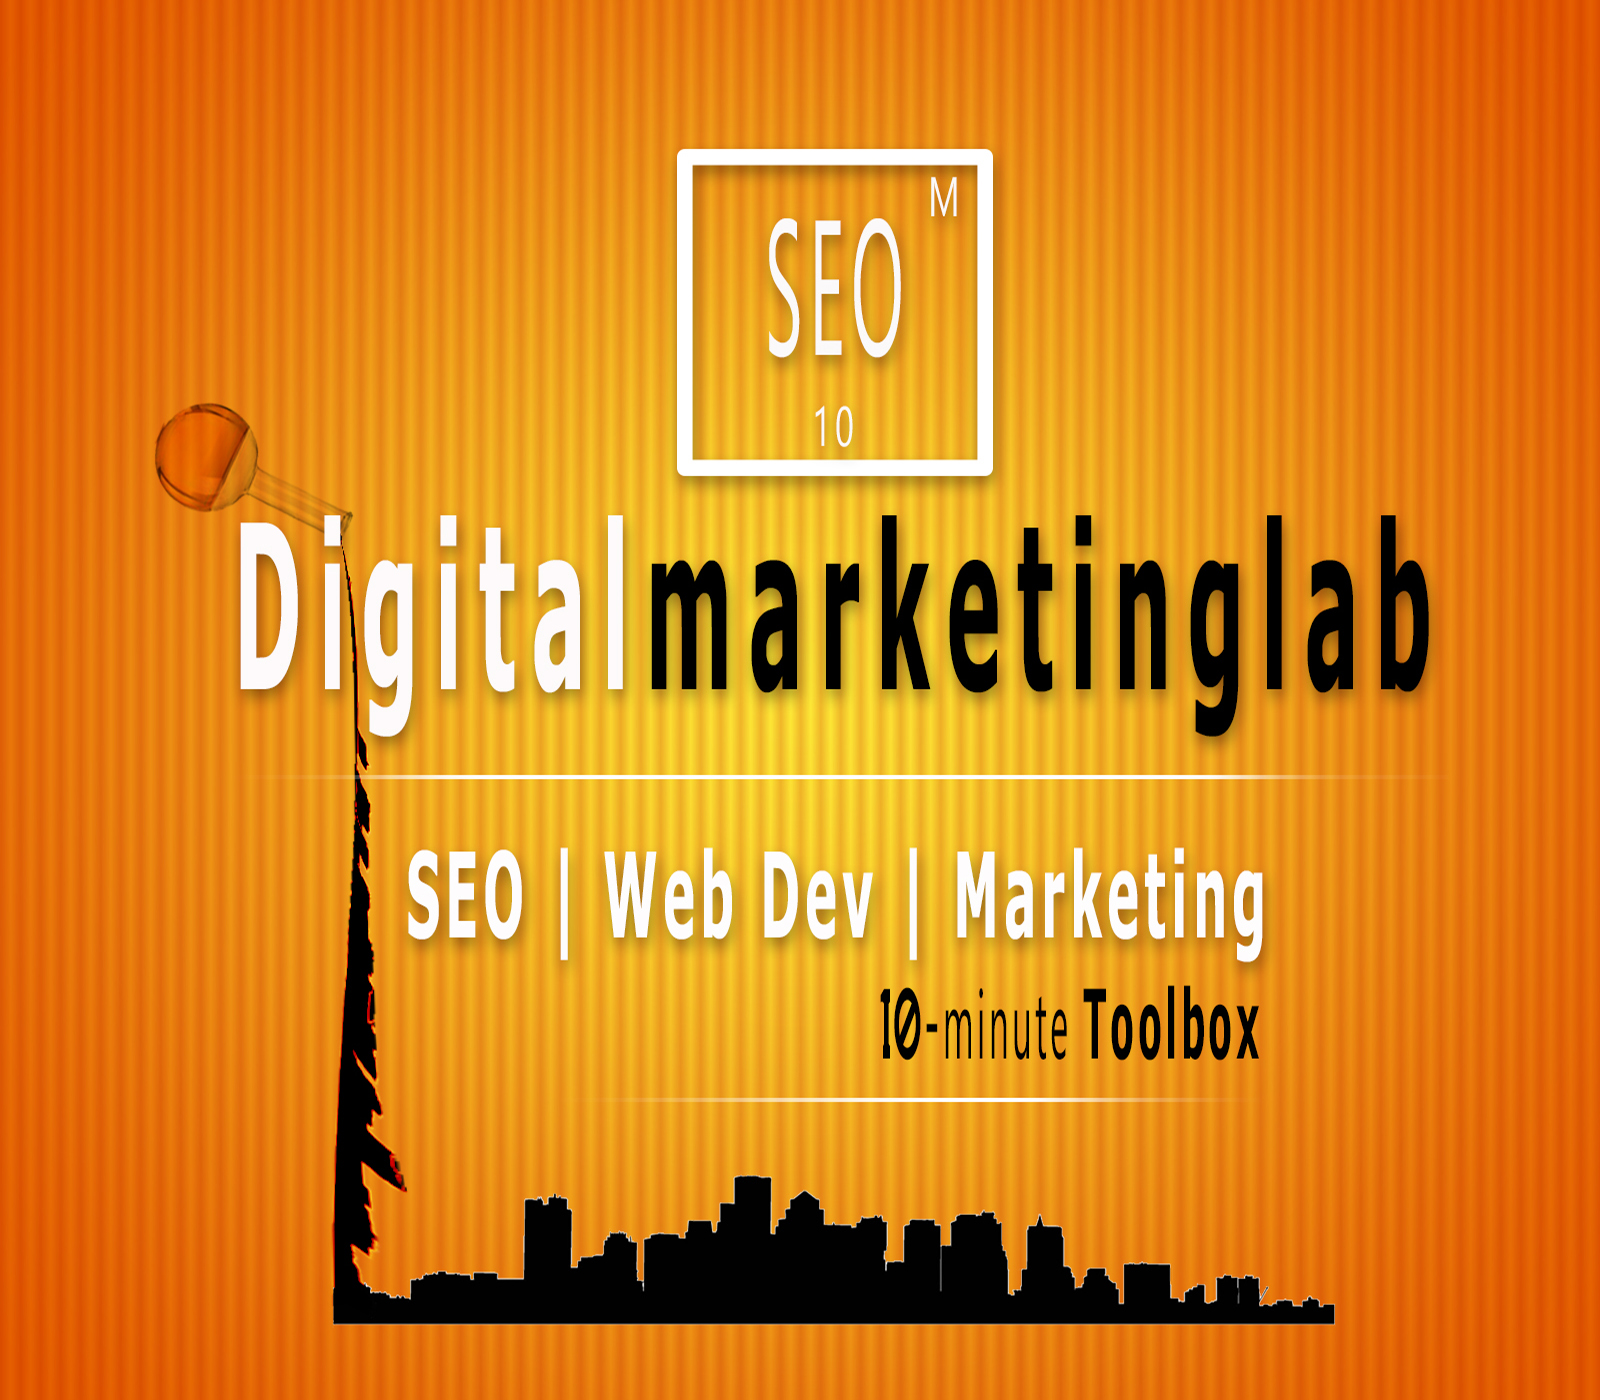 DIY SEO for Small Businesses